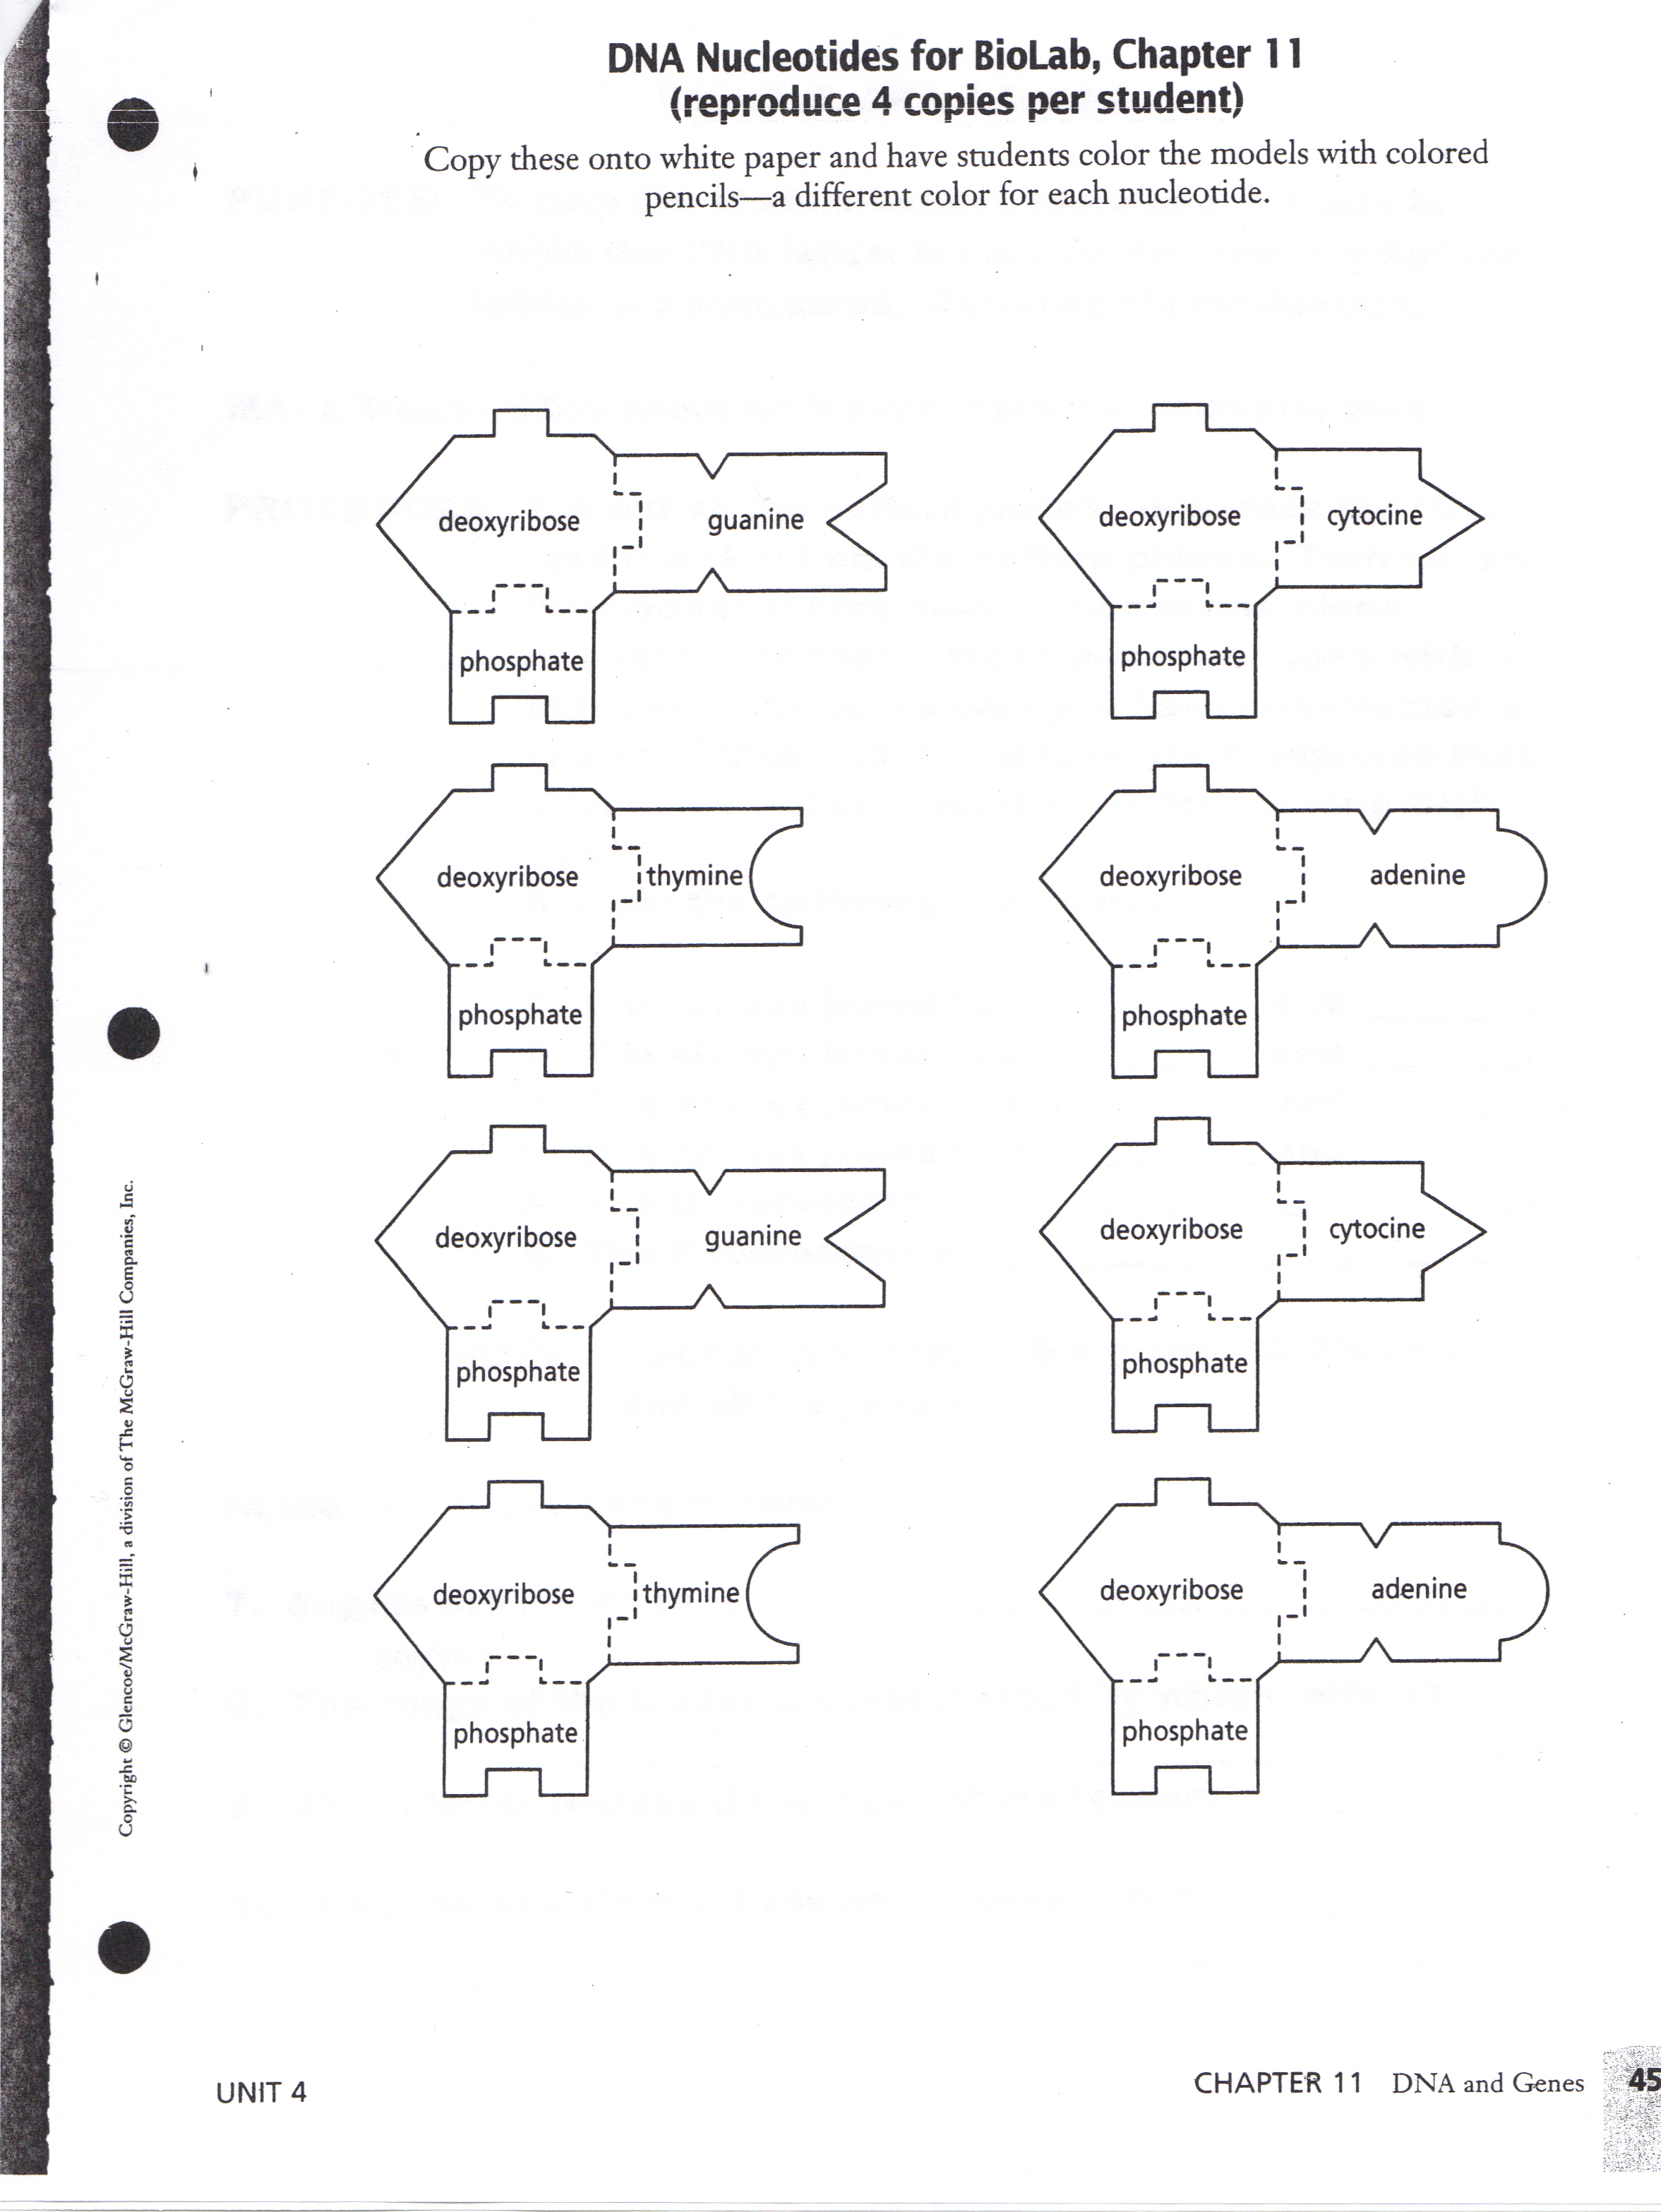 Dna and genes worksheet answers chapter 11